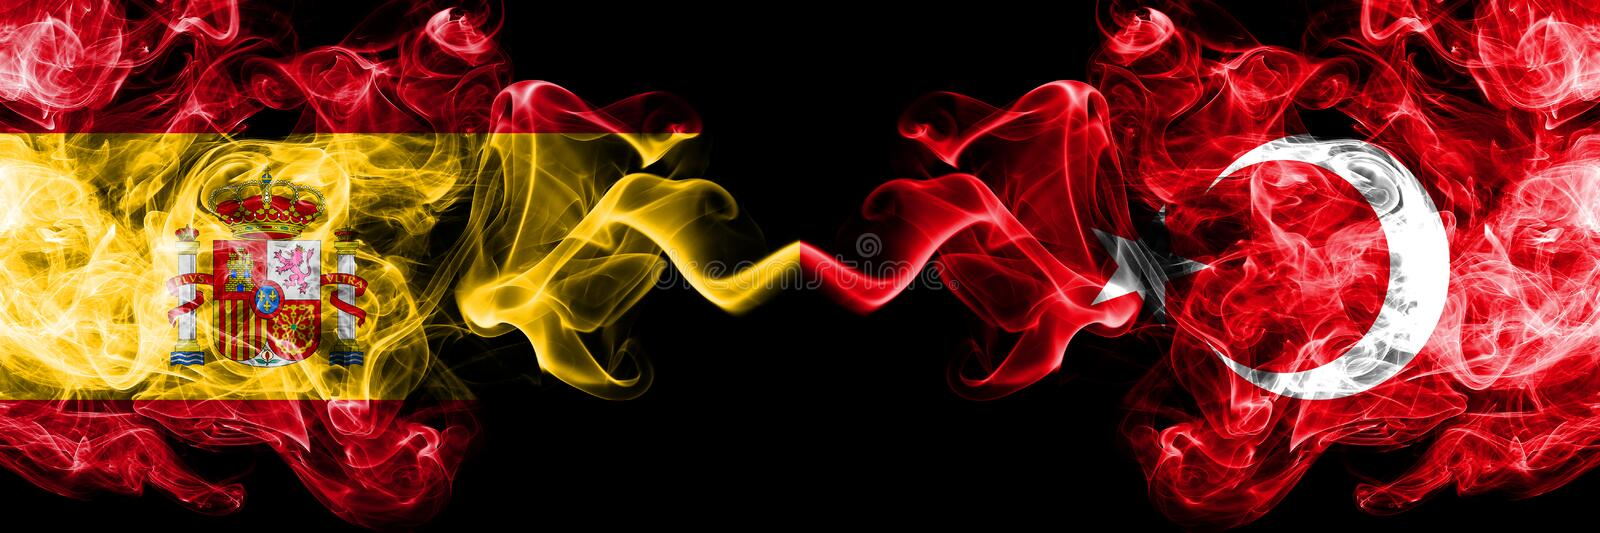 Spain vs Turkey, Turkish smoky mystic flags placed side by side. Thick colored silky smokes flag of Spanish and Turkey, Turkish. Spain ,vs Turkey, Turkish smoky stock photo